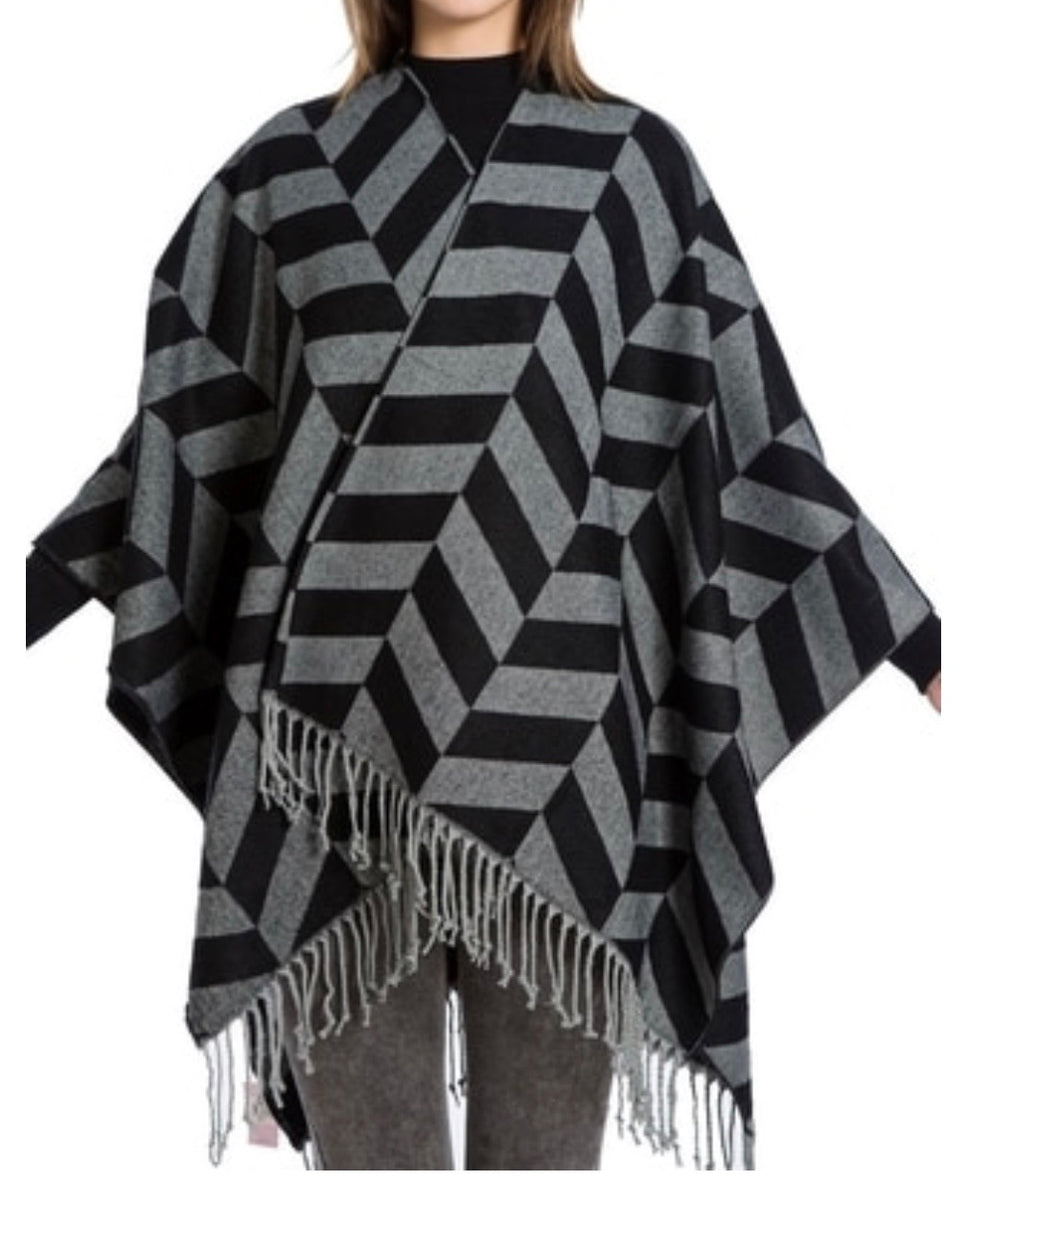 Black and grey blanket cape